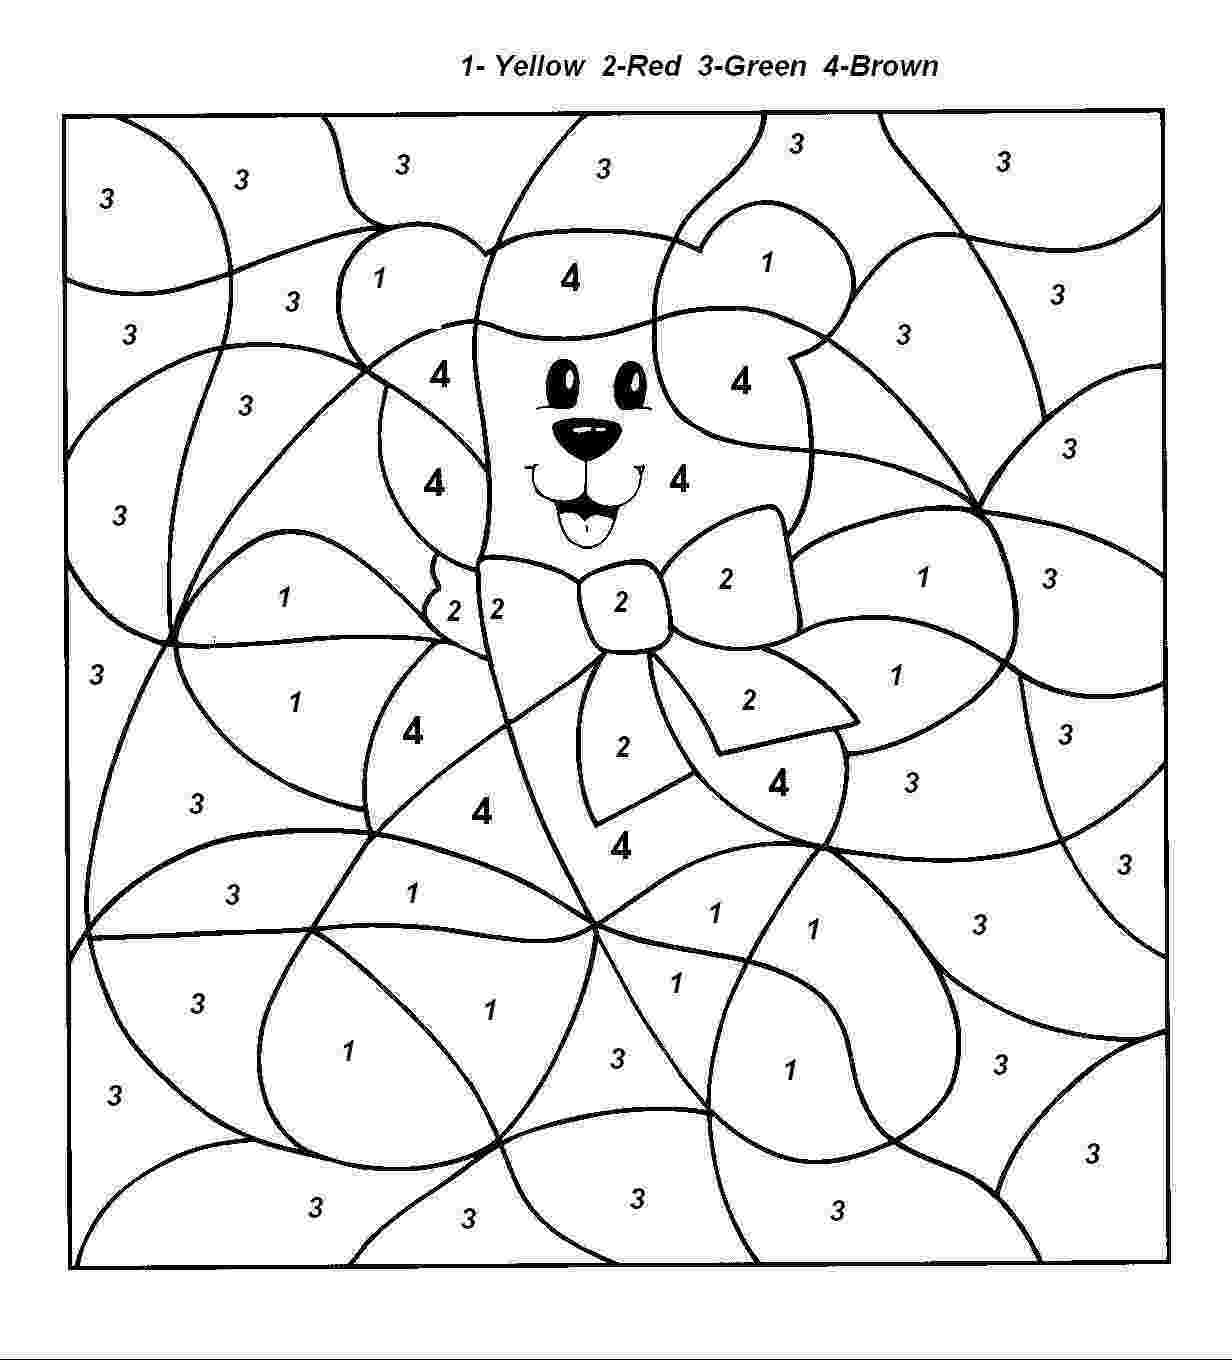 pictures to color by number color by number coloring pages to download and print for free to by number color pictures